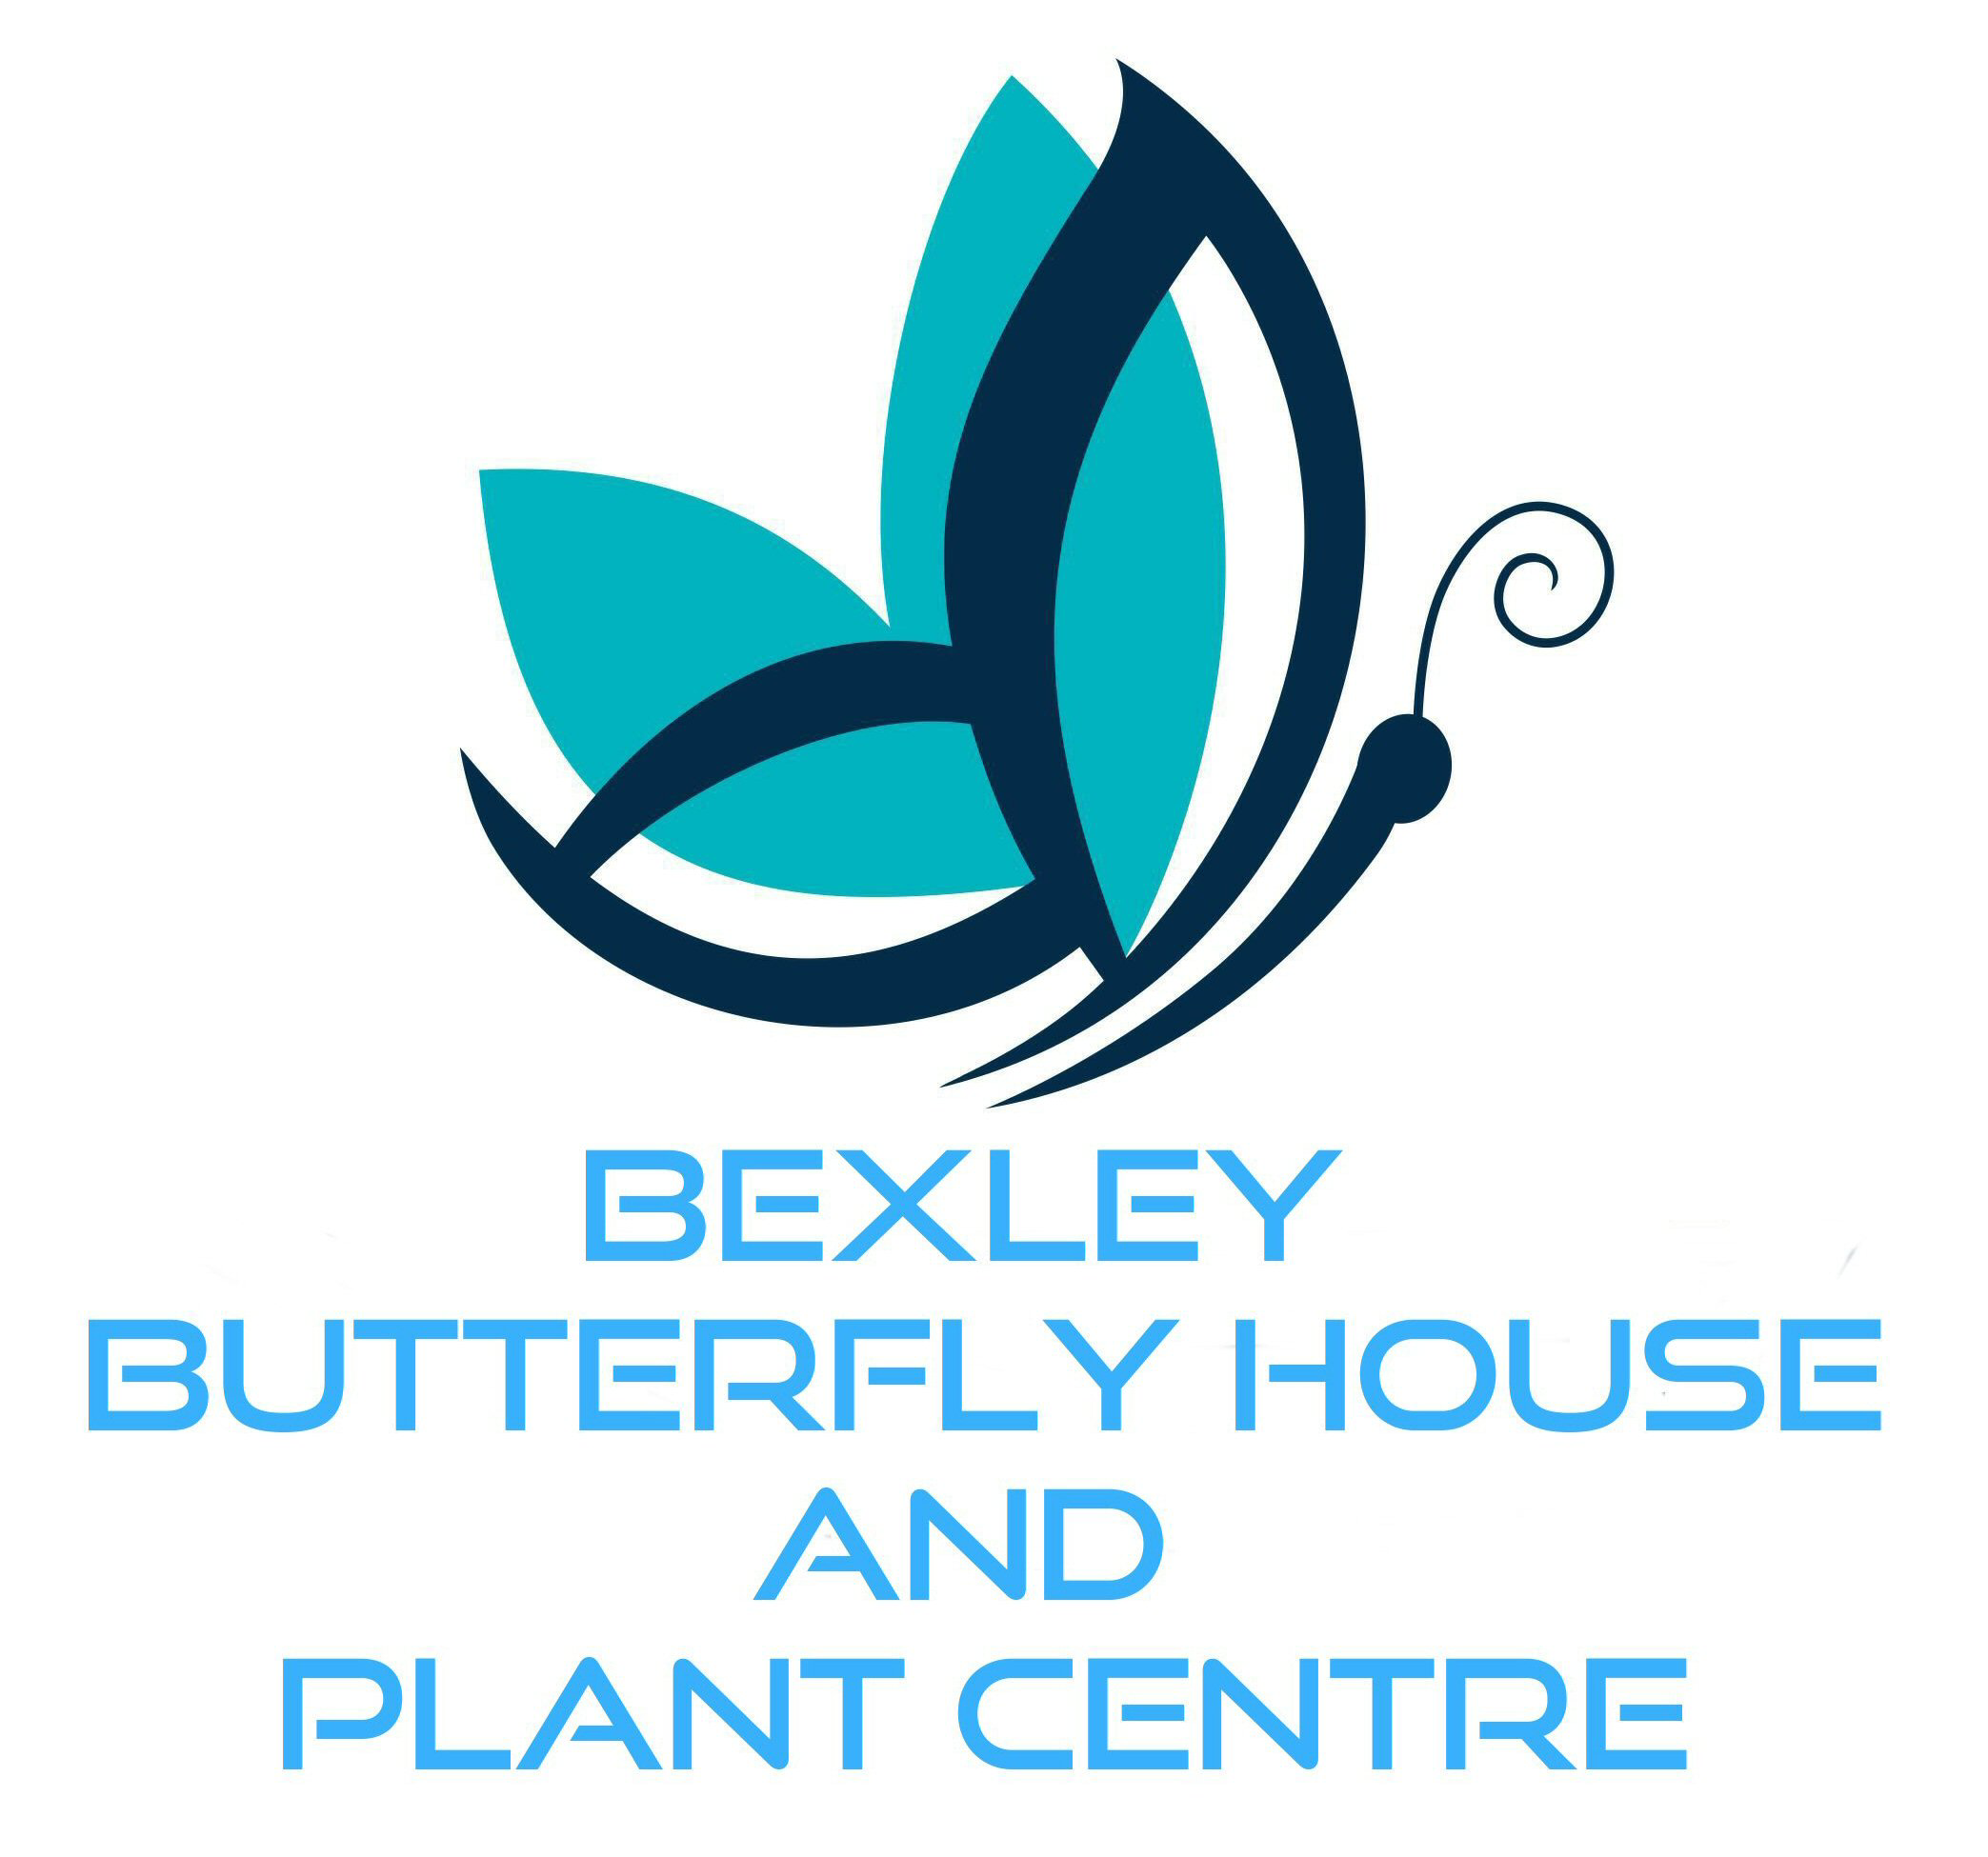 Bexley Butterfly House Online Bookings